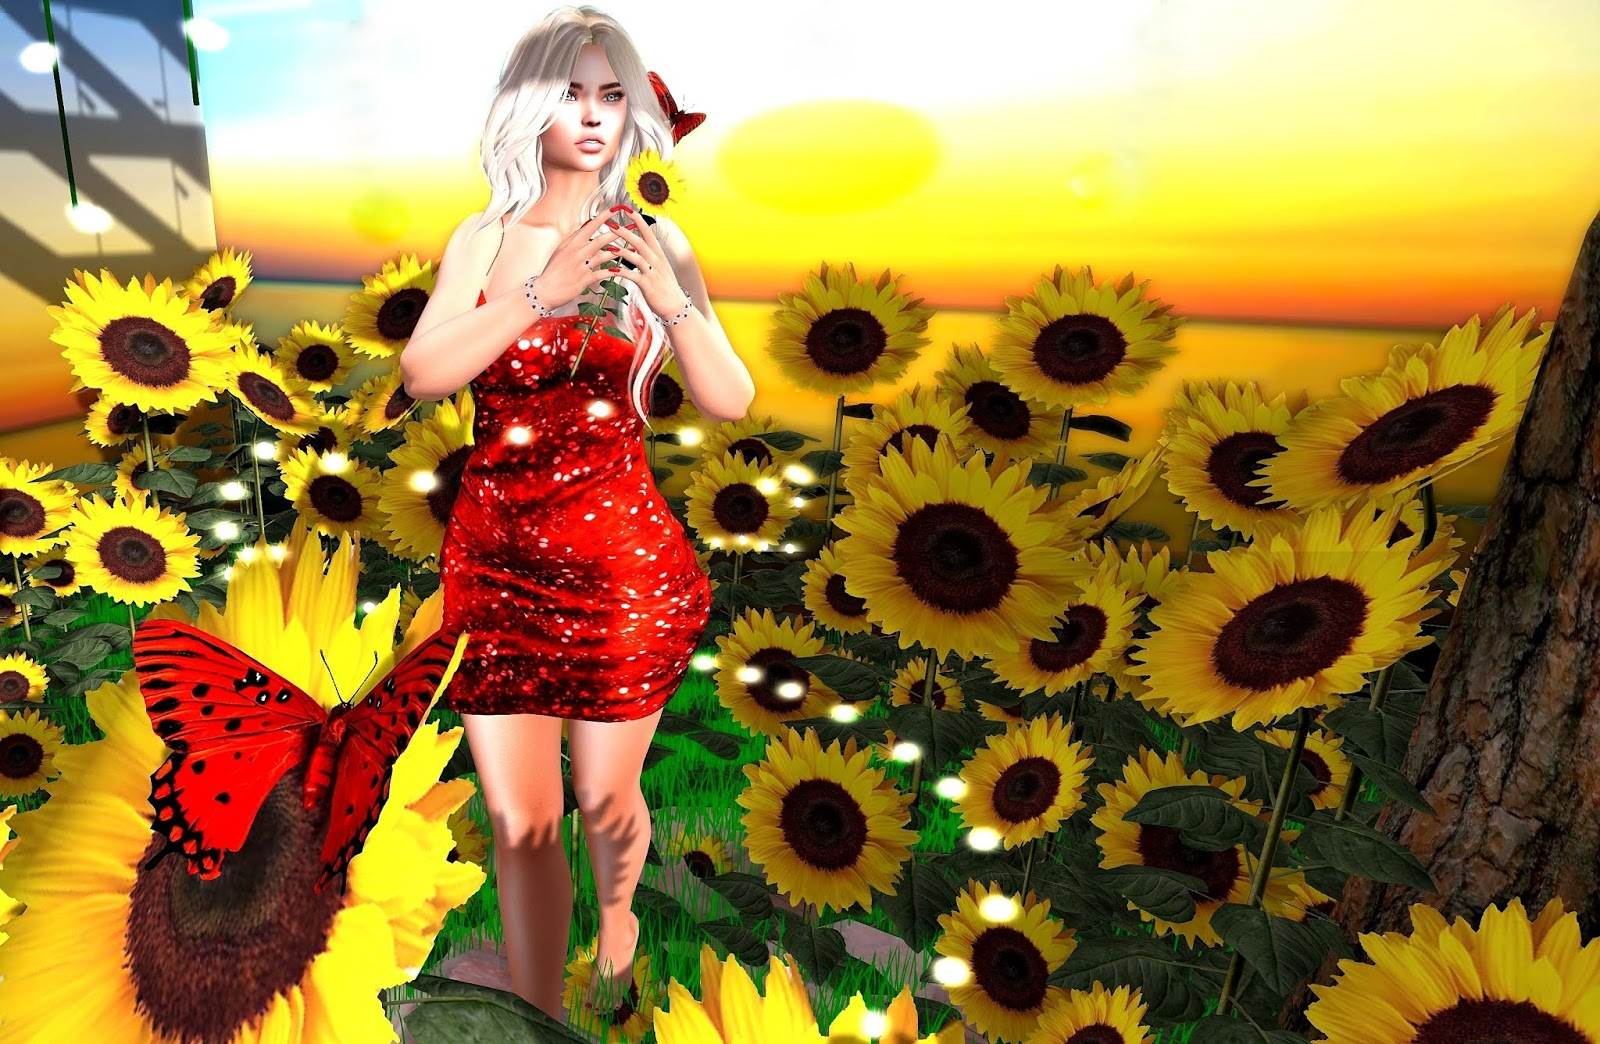 Sunflowers and Sparkles